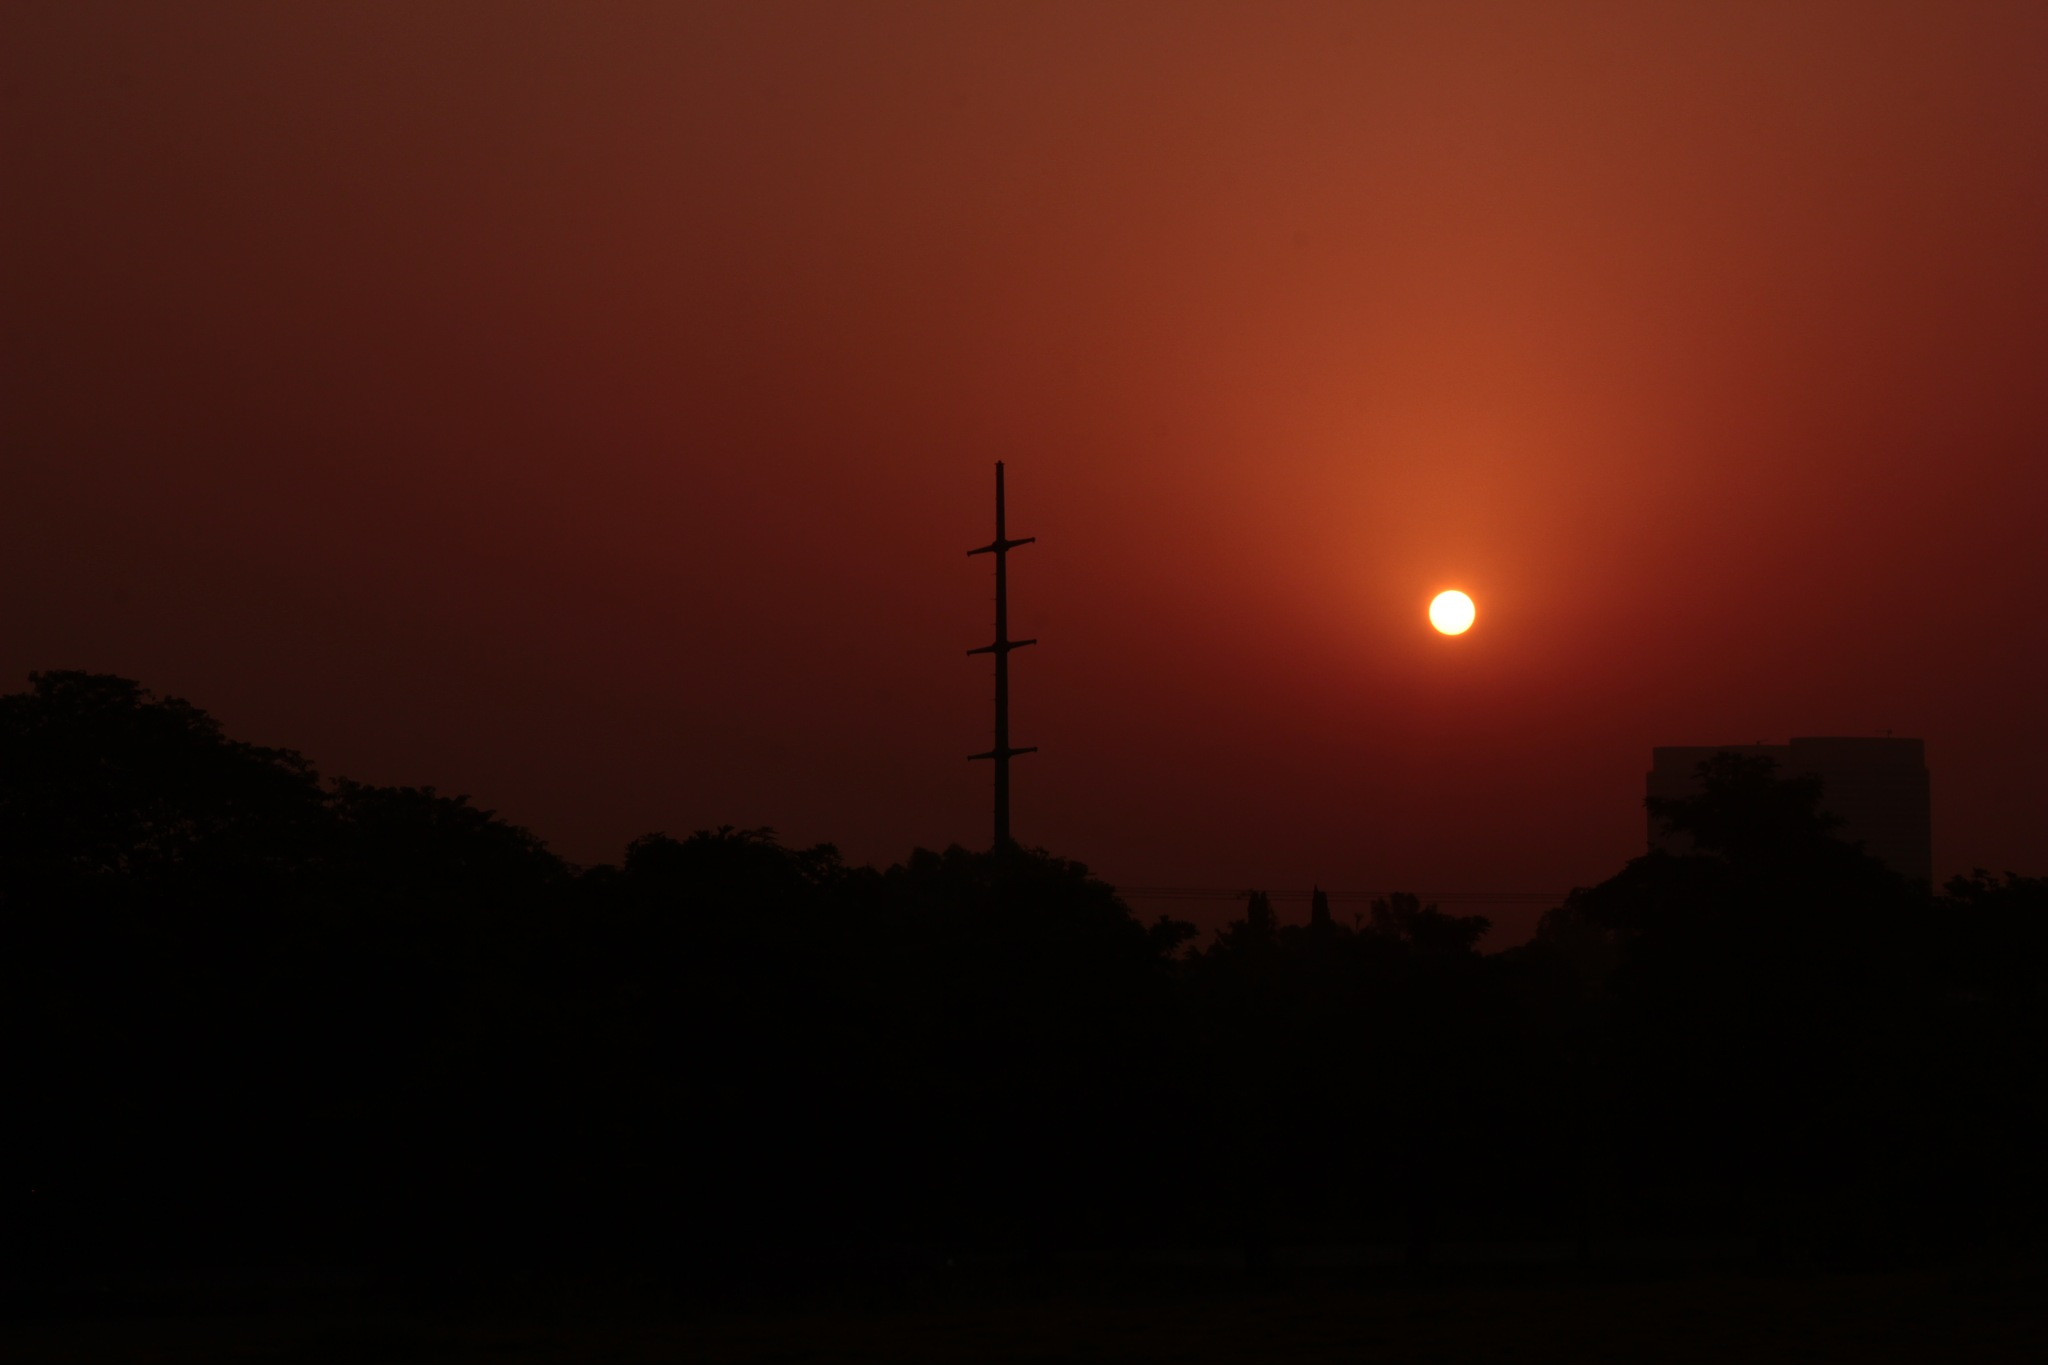 The sun rise  by Mehtab Hussain